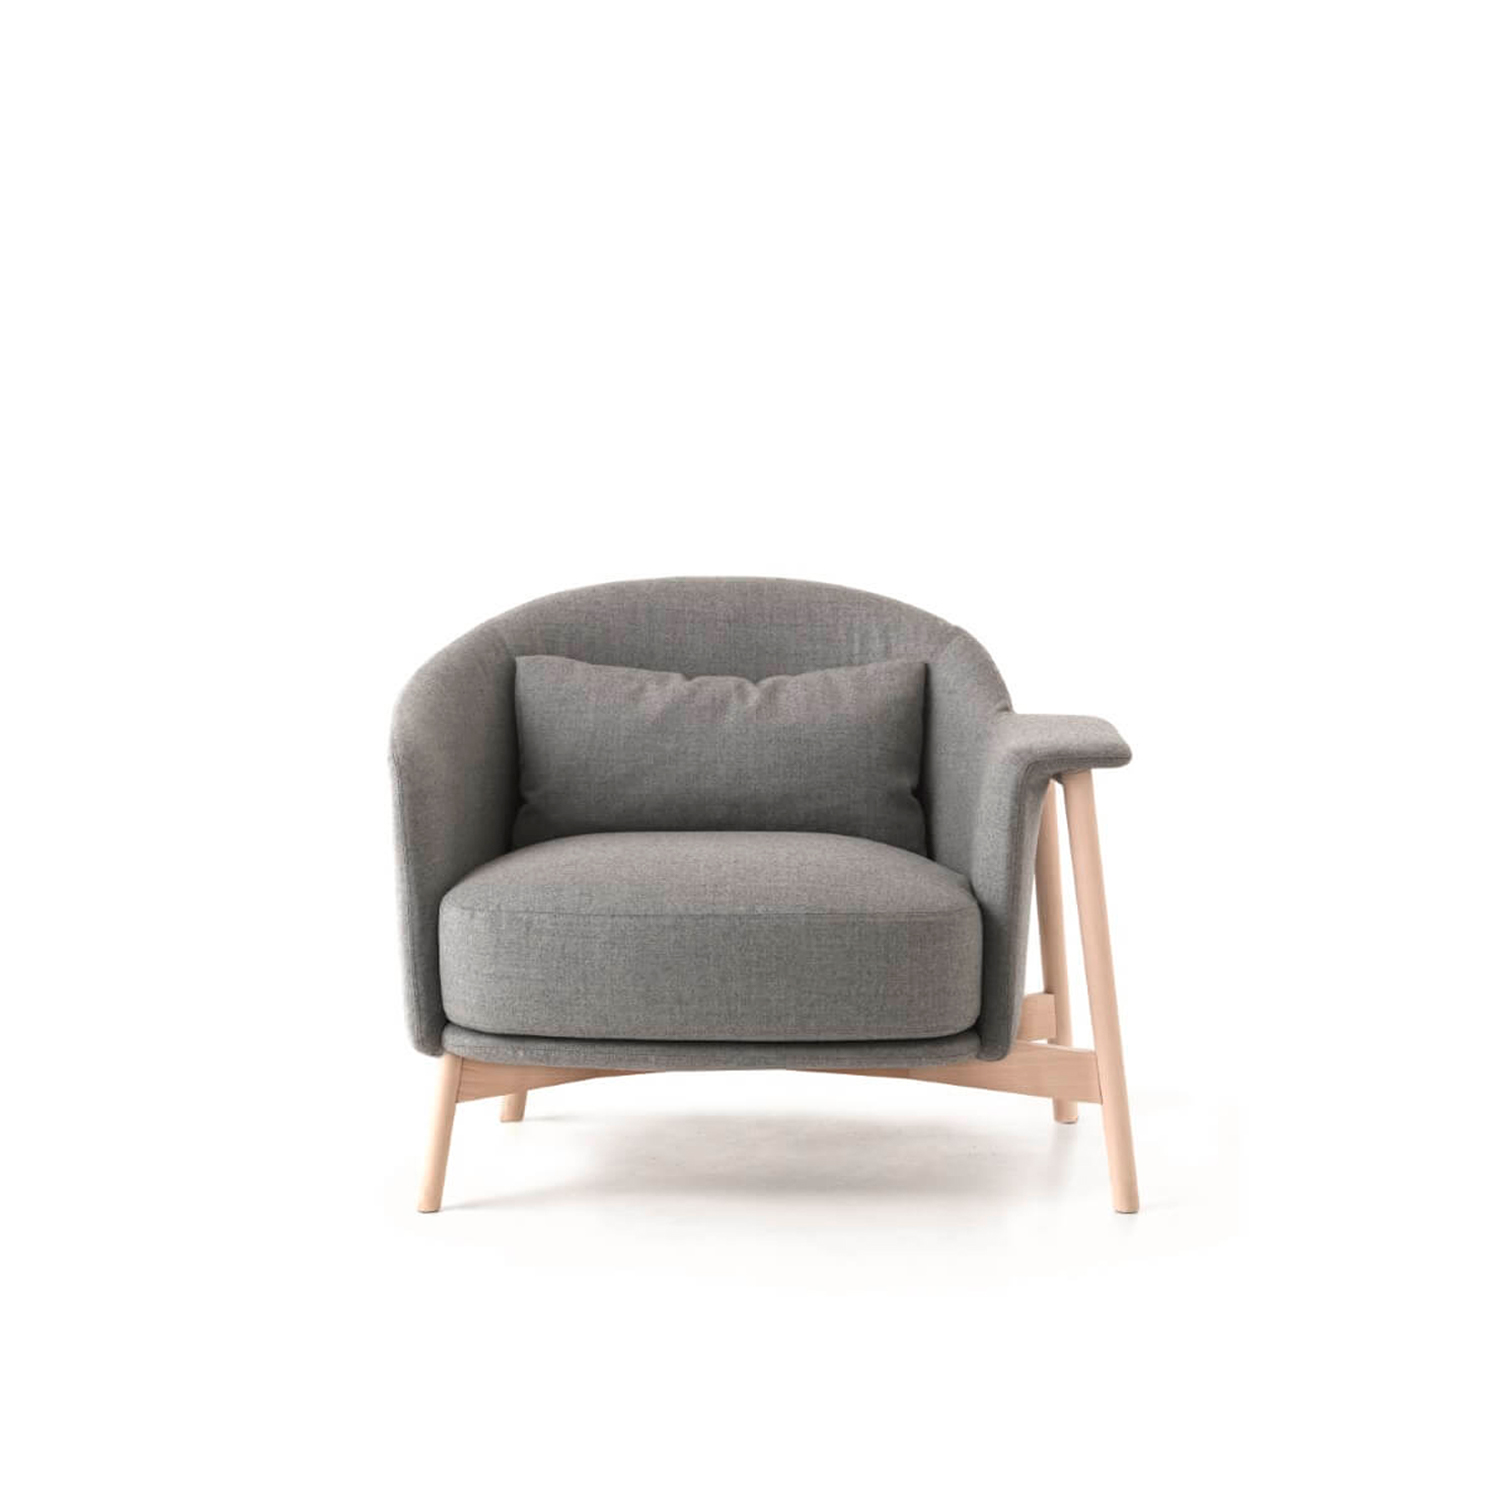 Kepi Lounge Armchair with Wooden Feet - The Kepi armchair's sober design and vaguely Nordic look are softened by rounded lines that add character and improve comfort. Its clean design and nonchalant elegance make it perfect for the home and contract environments. The structure in bleached ash wood becomes its characteristic trait. The base is also available in varnished tubular stainless steel. The collection also includes a two-seat sofa and a pouf. Fully removable covers.  Additional removable cover is available, please enquire for prices.  Materials:  Structure in plywood with variable-density polyurethane foam (75IP and 25IM) covered with velfodera coupled with resin 150 gr/sqm. The armchair has got feet in ash or iron painted rod 18 mm. The seat cushion is in variable-density polyurethane foam (40IM and 25IM) covered with fine velvet coupled with dacron 280 gr/sqm. The lumber cushion is mae in 100% cotton fabric and padded with washed and sterilized goose down. | Matter of Stuff